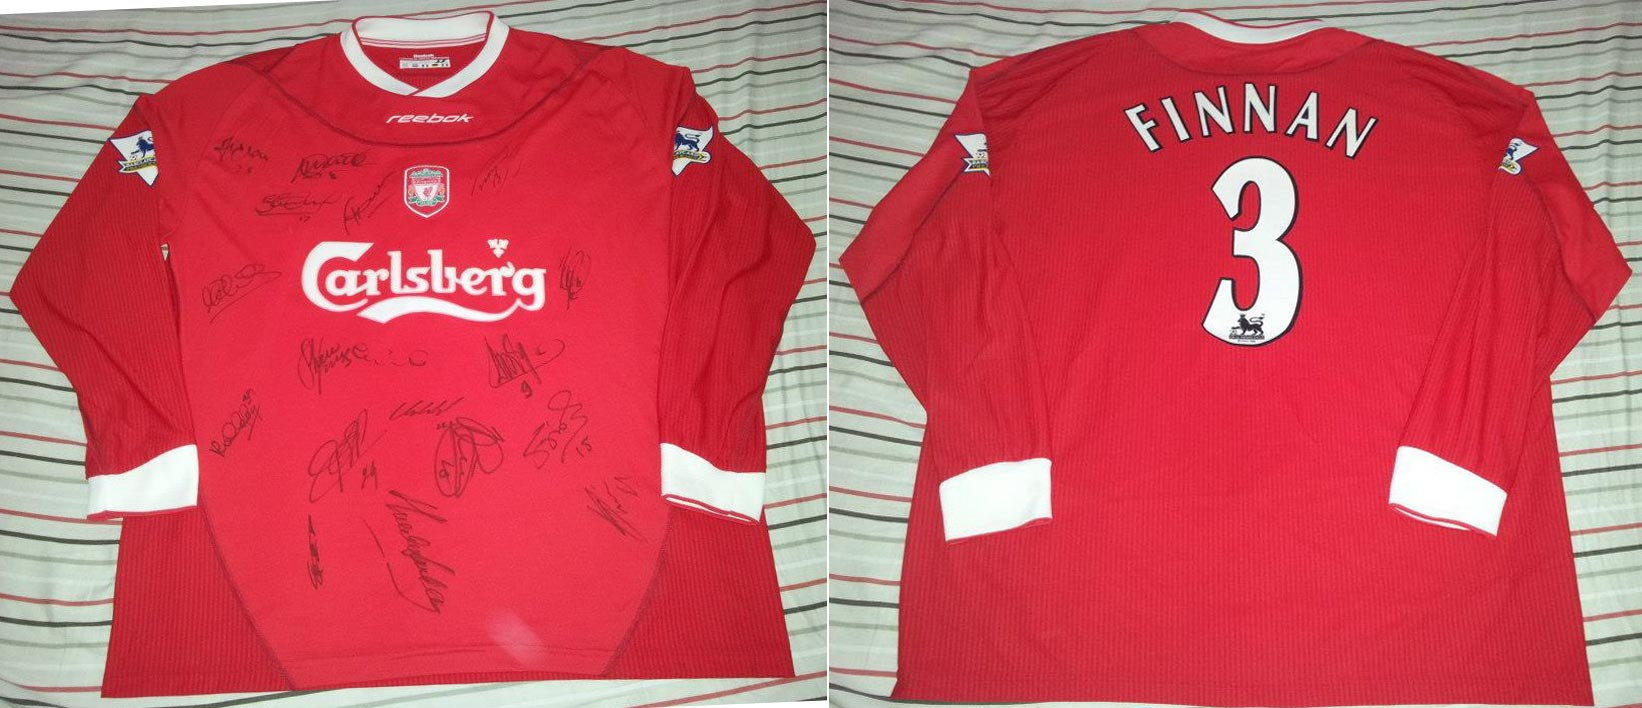 finest selection 9b100 b2a78 The History Liverpool F.C. Kits 2003 - 2004